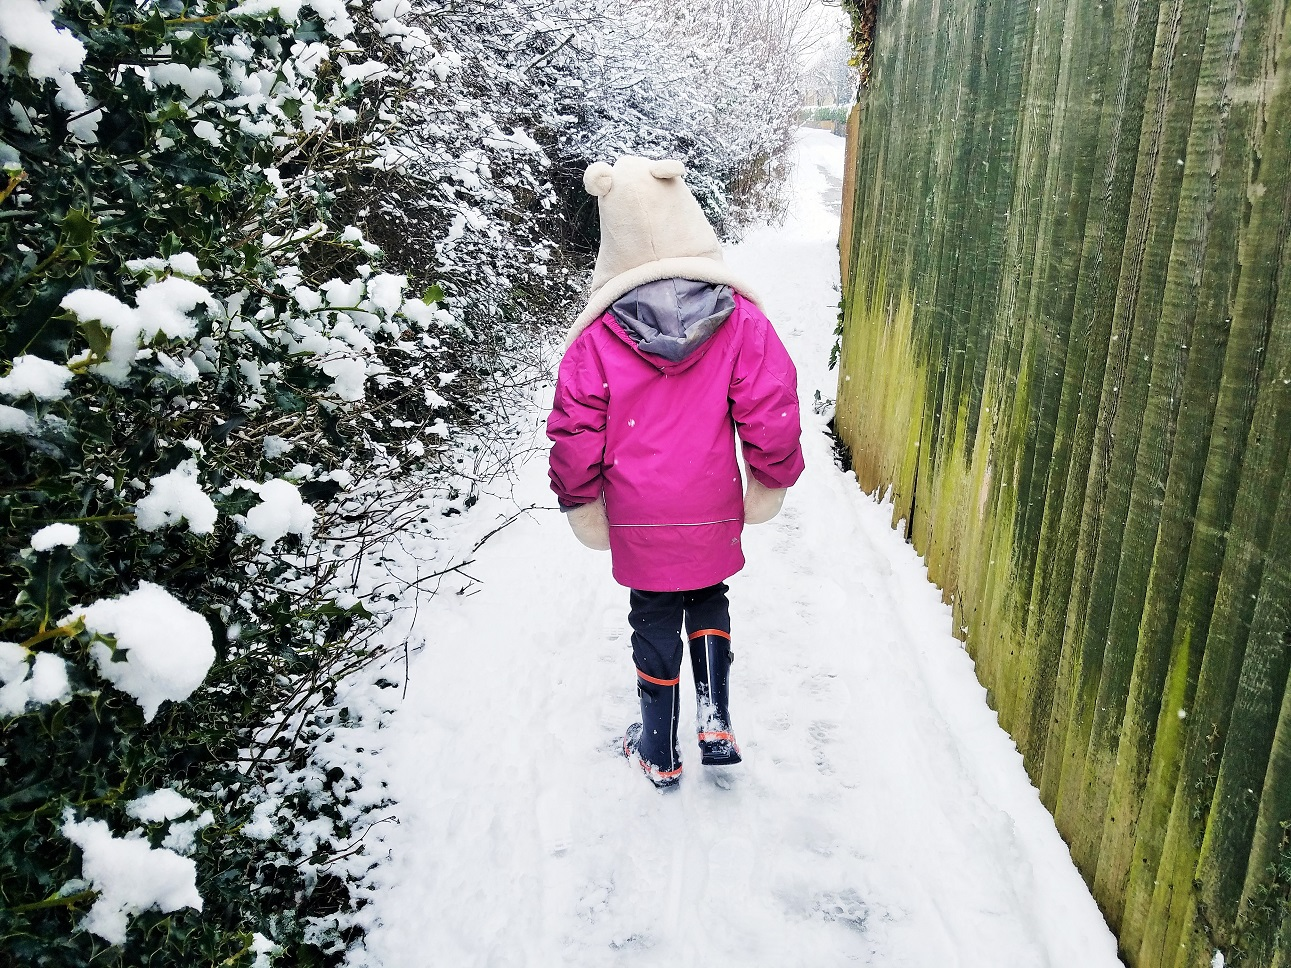 live away from home - solitary child walking through snow